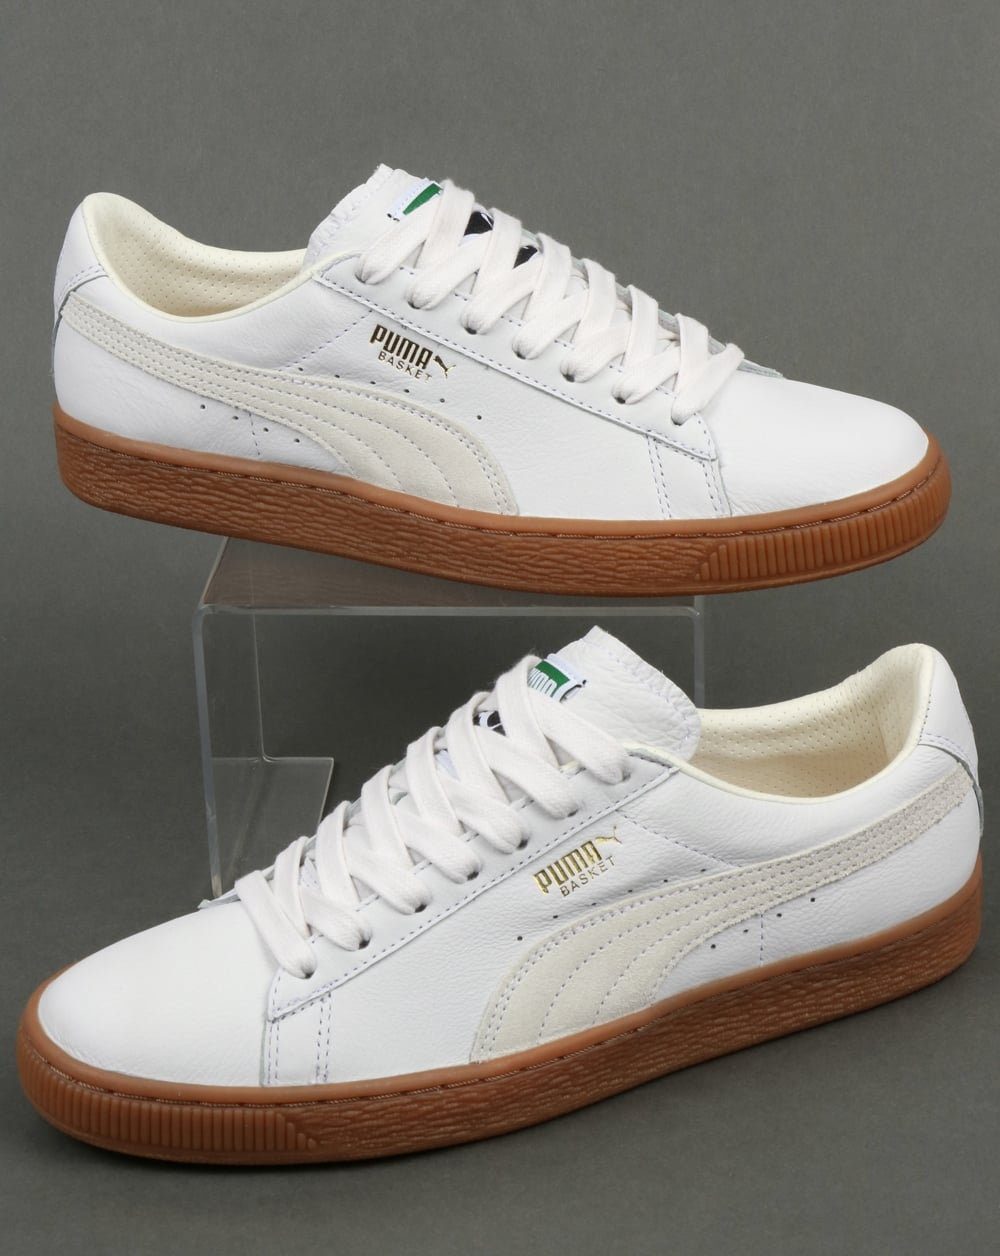 c50300f9201 Puma Basket Classic Gum Deluxe Trainers White,leather,retro,shoes,mens